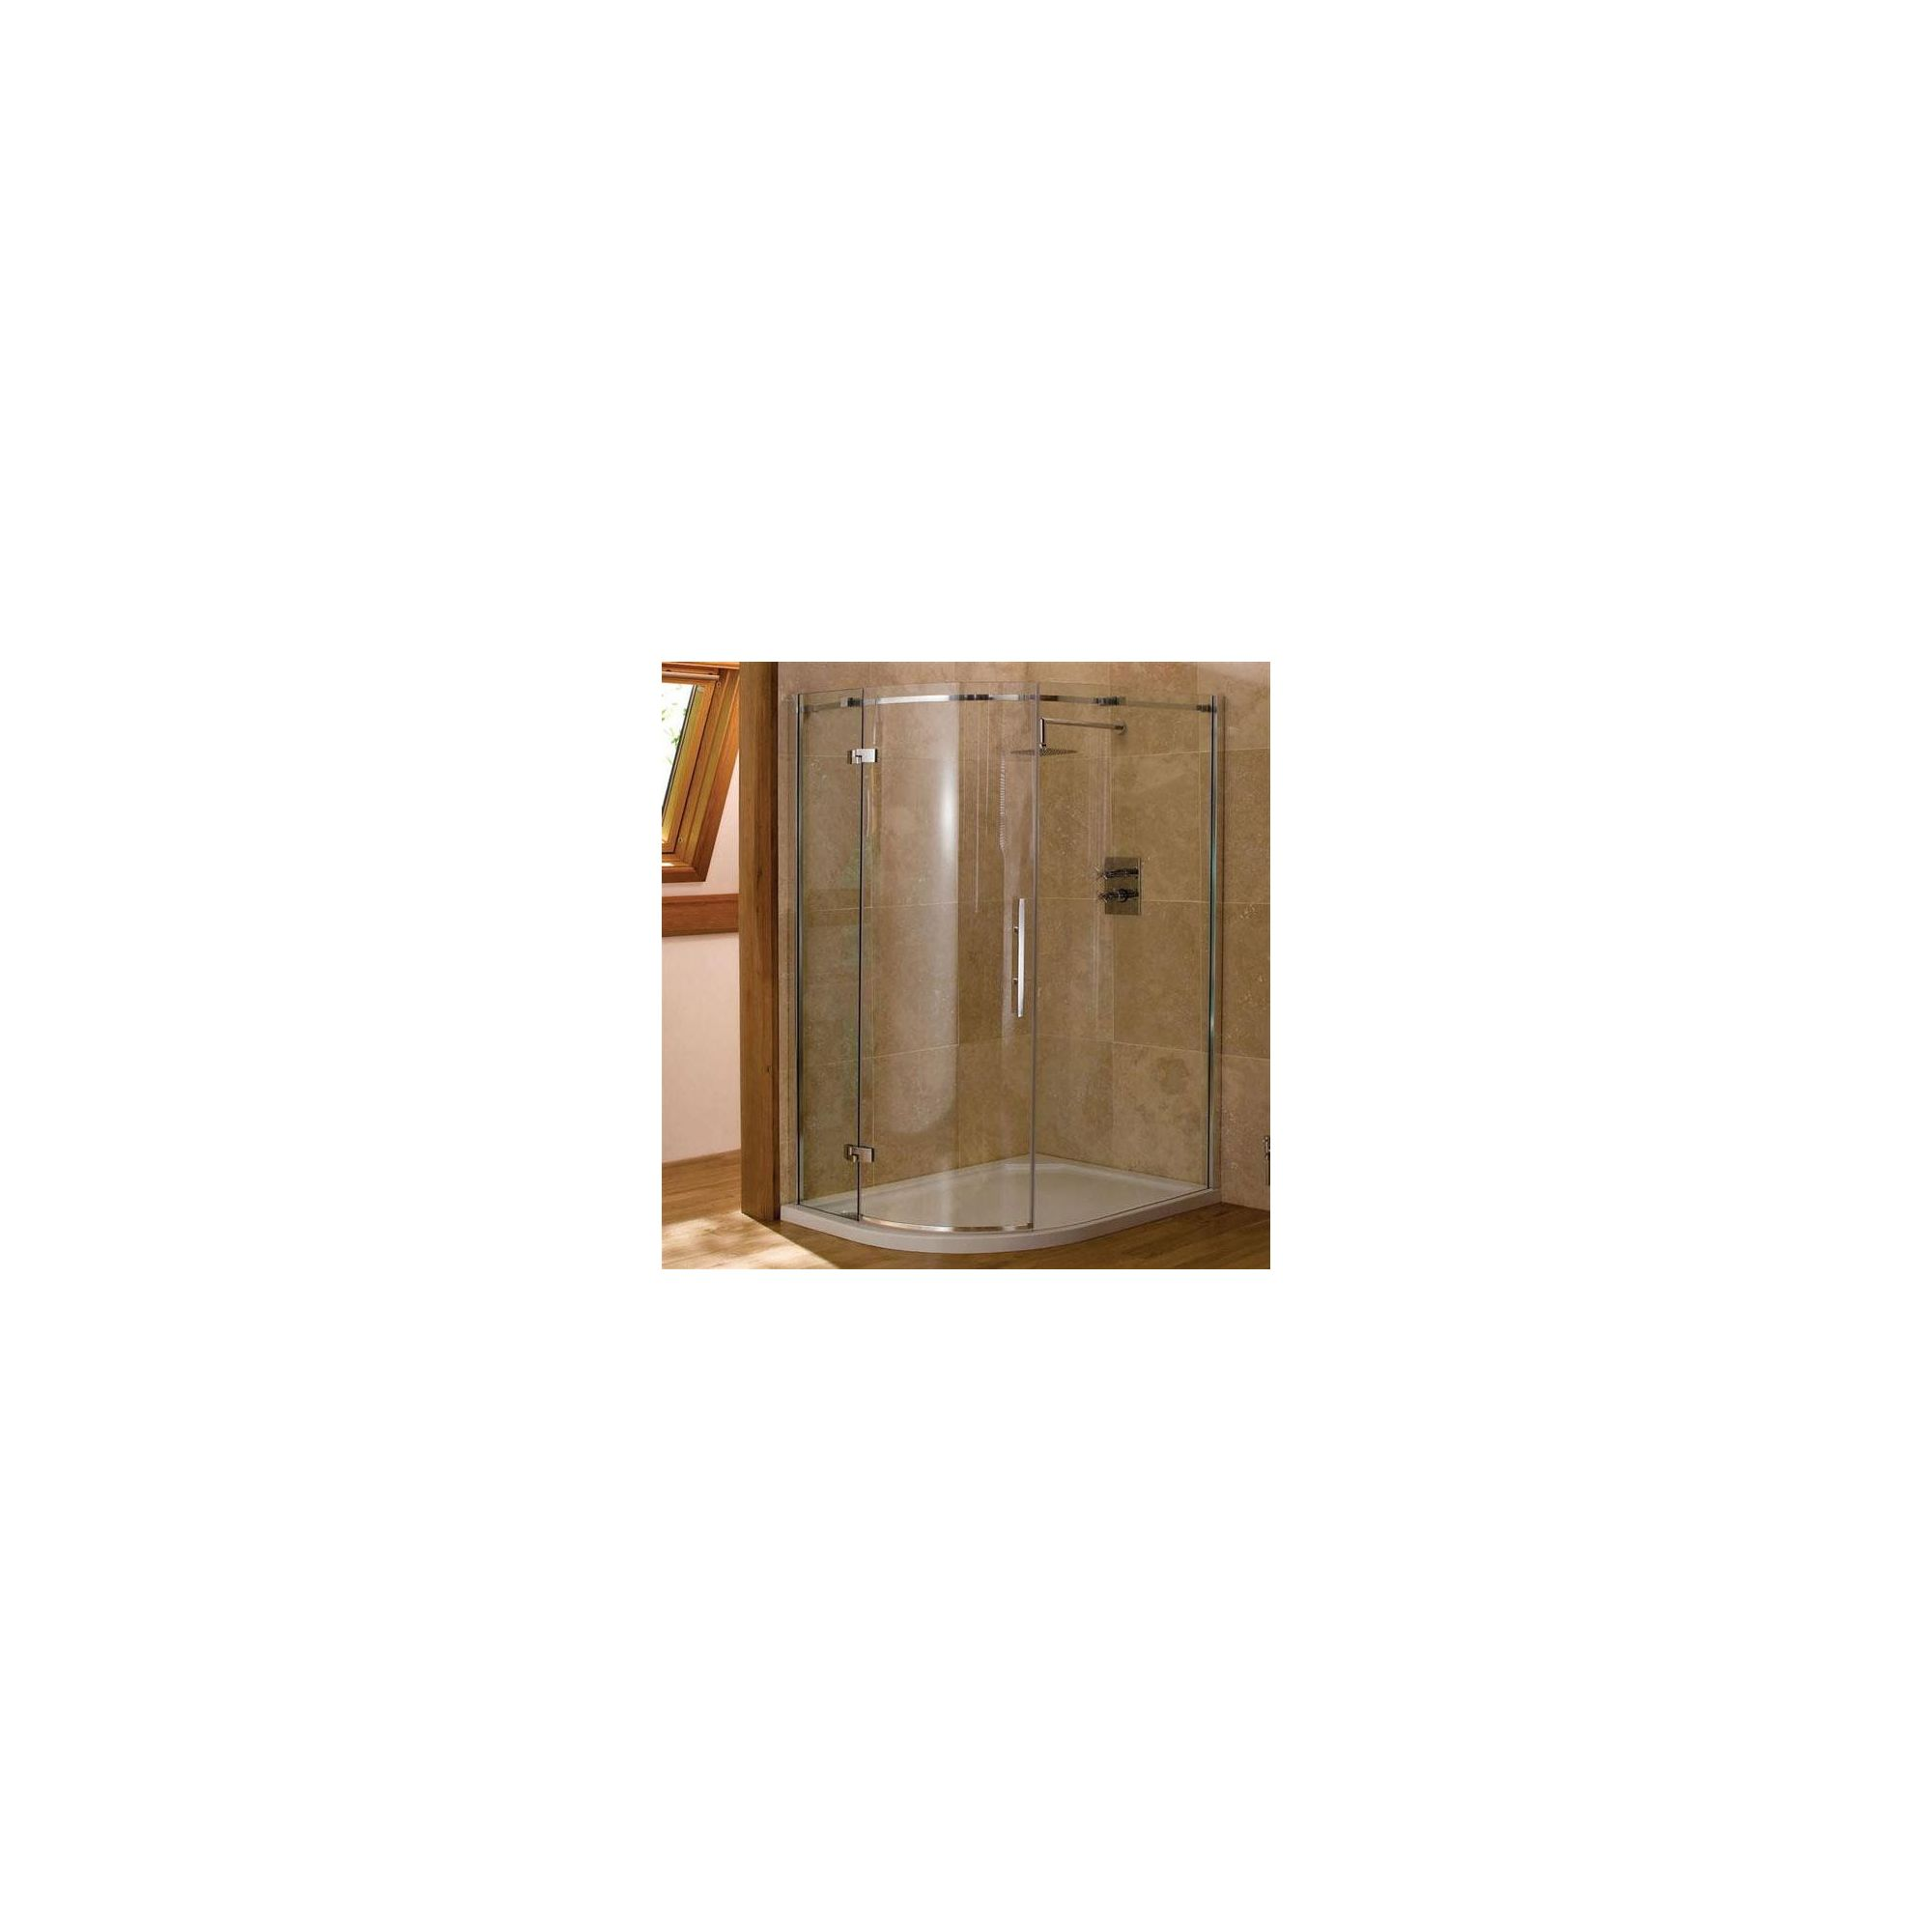 Merlyn Vivid Nine Offset Quadrant Shower Enclosure, 1200mm x 900mm, Right Handed, Low Profile Tray, 8mm Glass at Tesco Direct